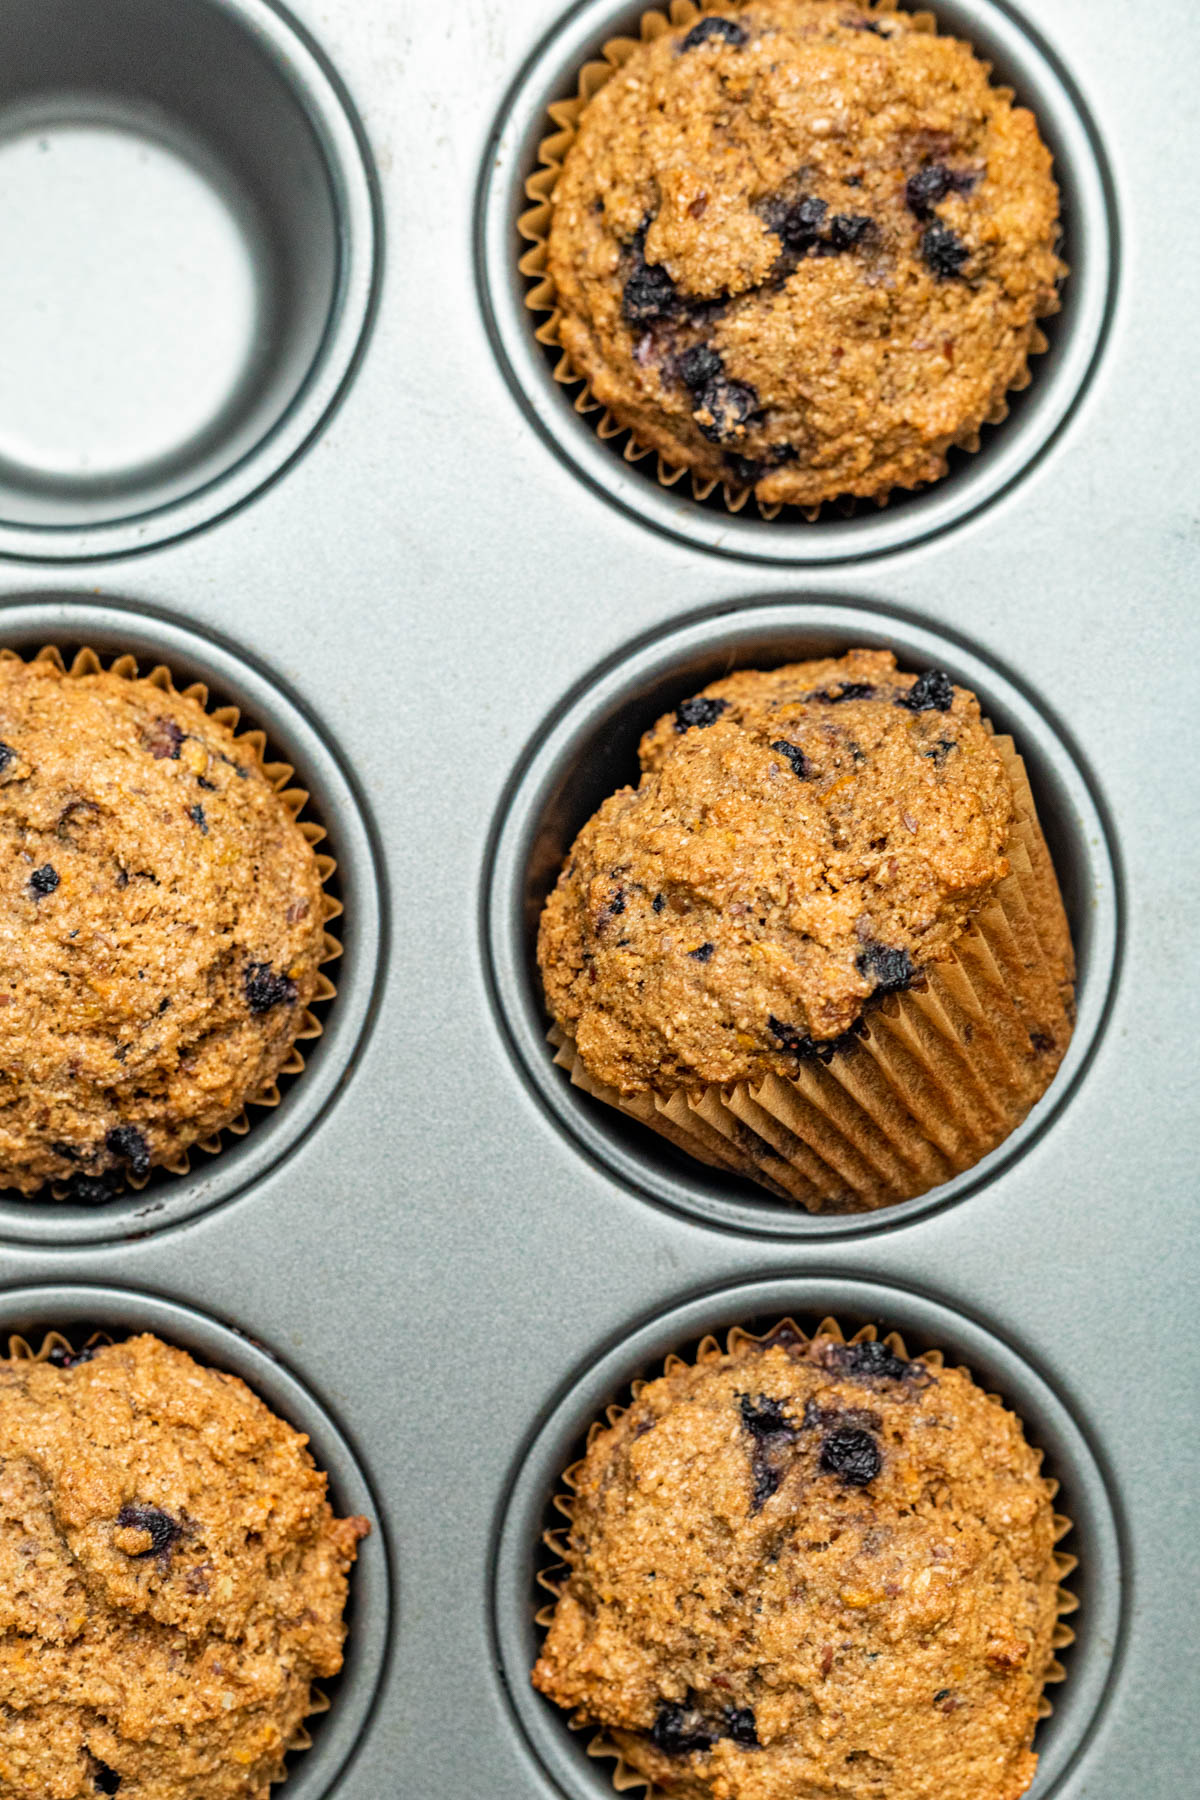 Muffins after baking.